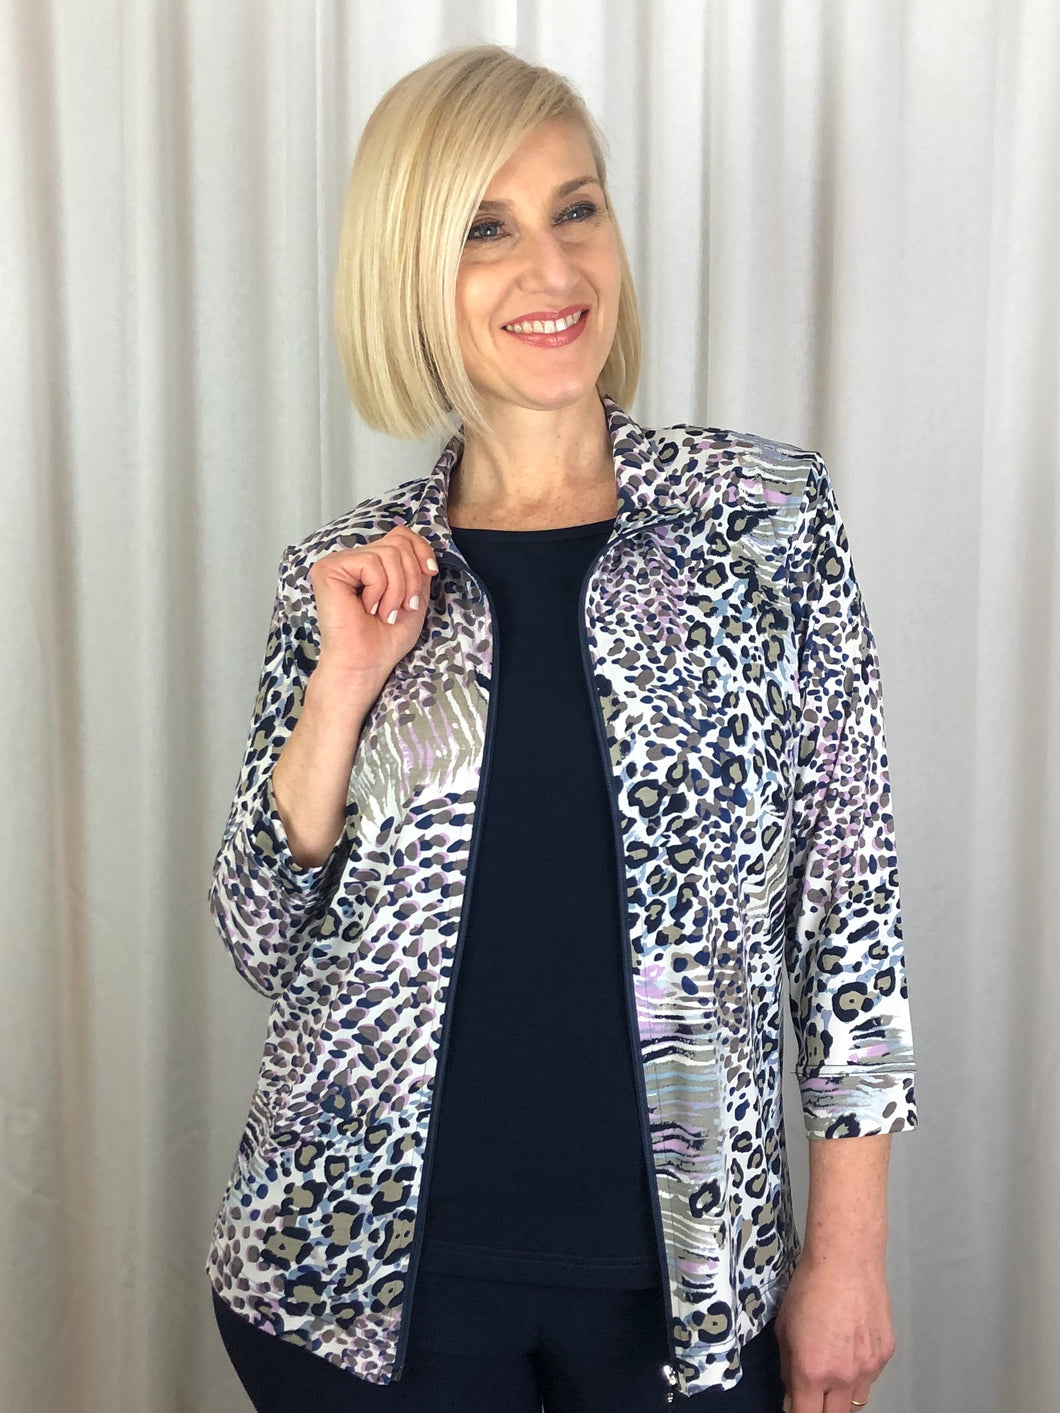 Our 3/4 Sleeve Serengeti Zip Jacket is a relaxed, easy to wear item that packs easily making it great for travelling. In shades of navy, taupe and pink, team it with one of our camis in a coordinating colour to highlight the print. Made in Australia from Poly/Spandex, it's fully washable and drip dries in no time.